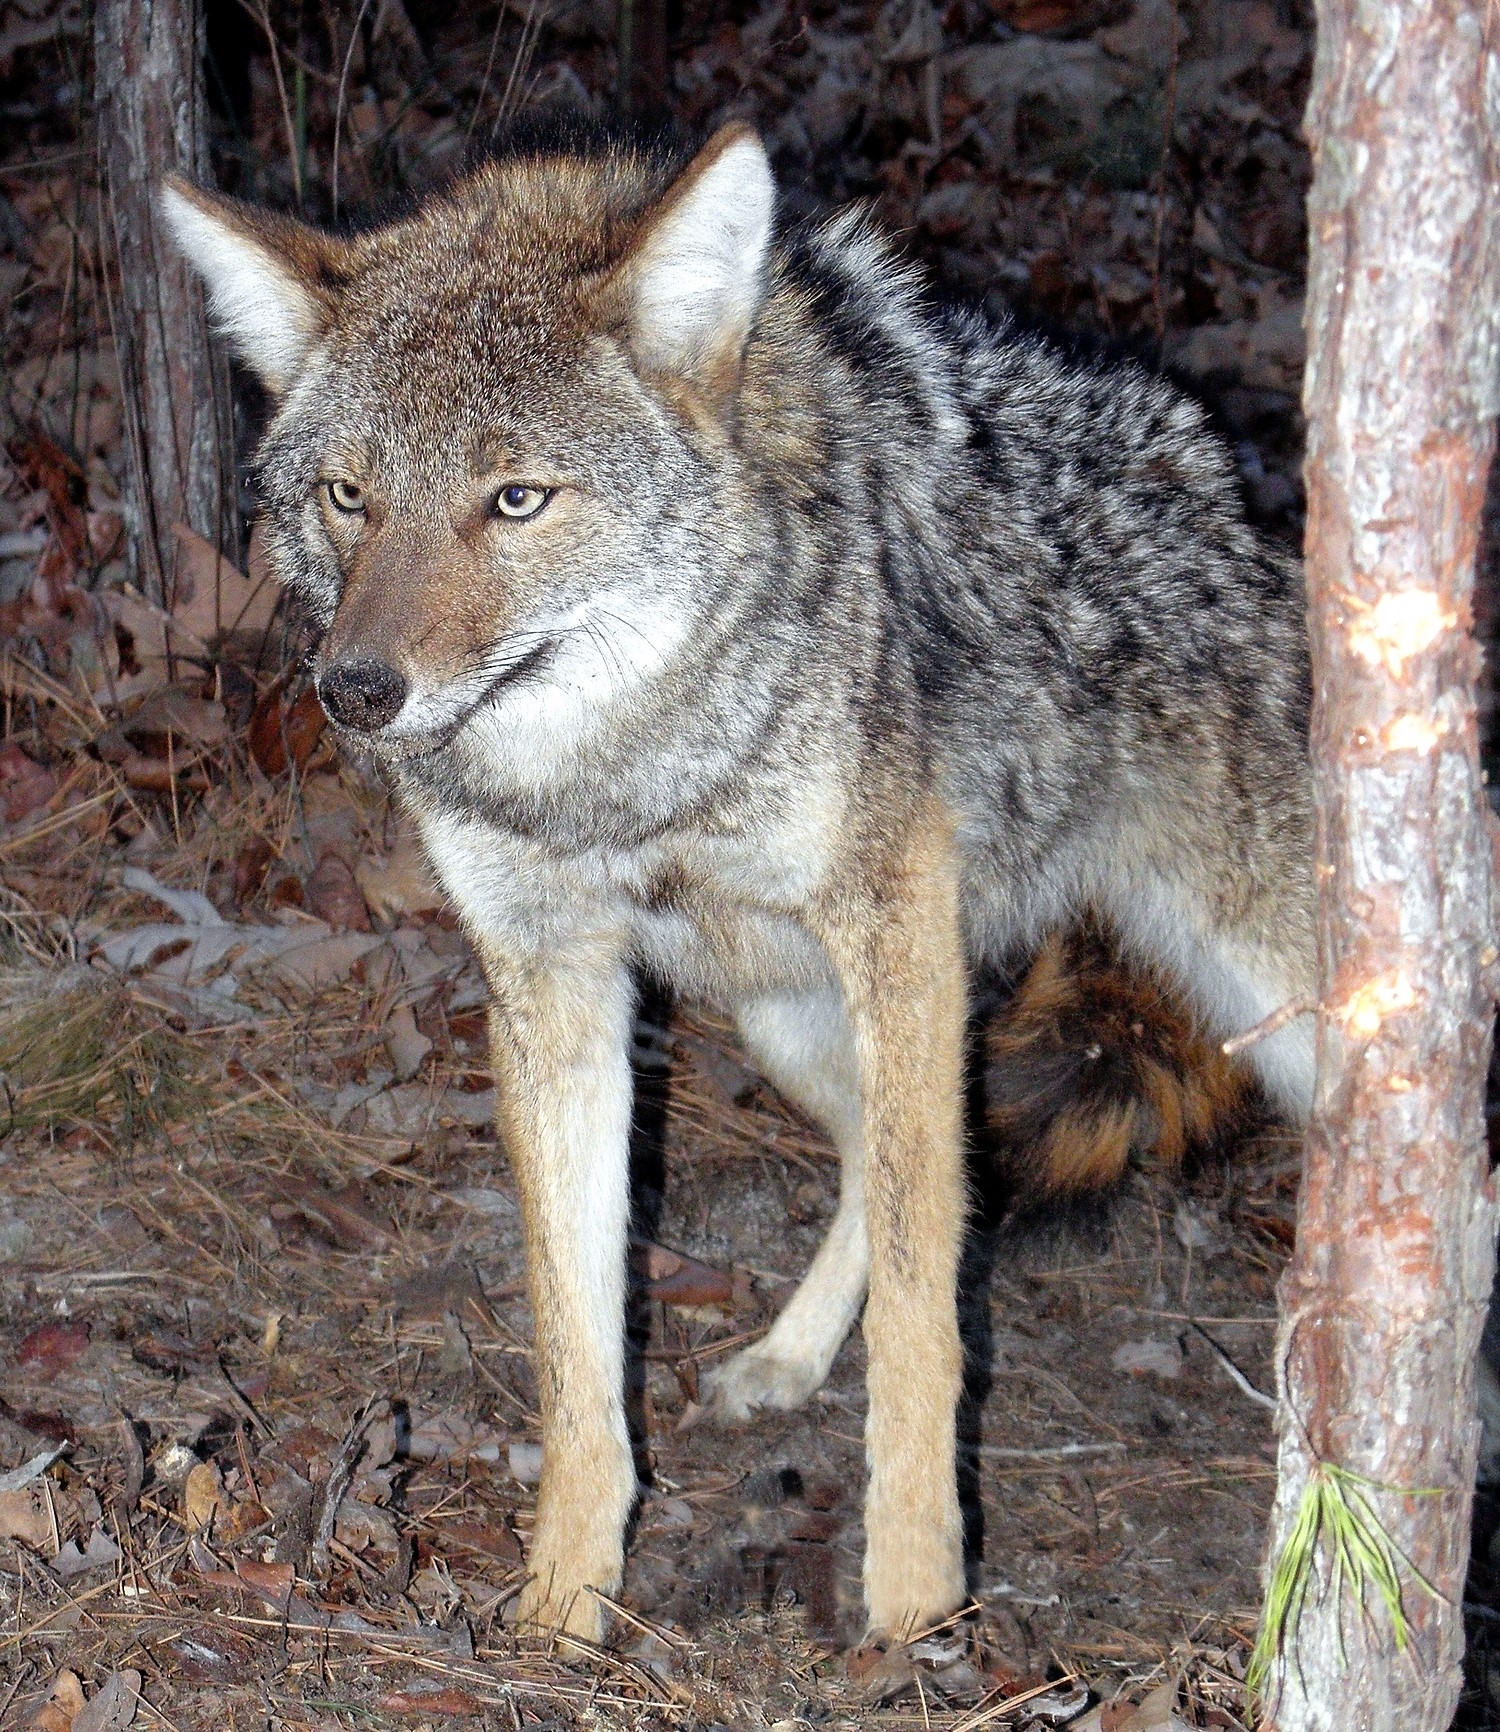 Coyote are Killers - both Good and Bad